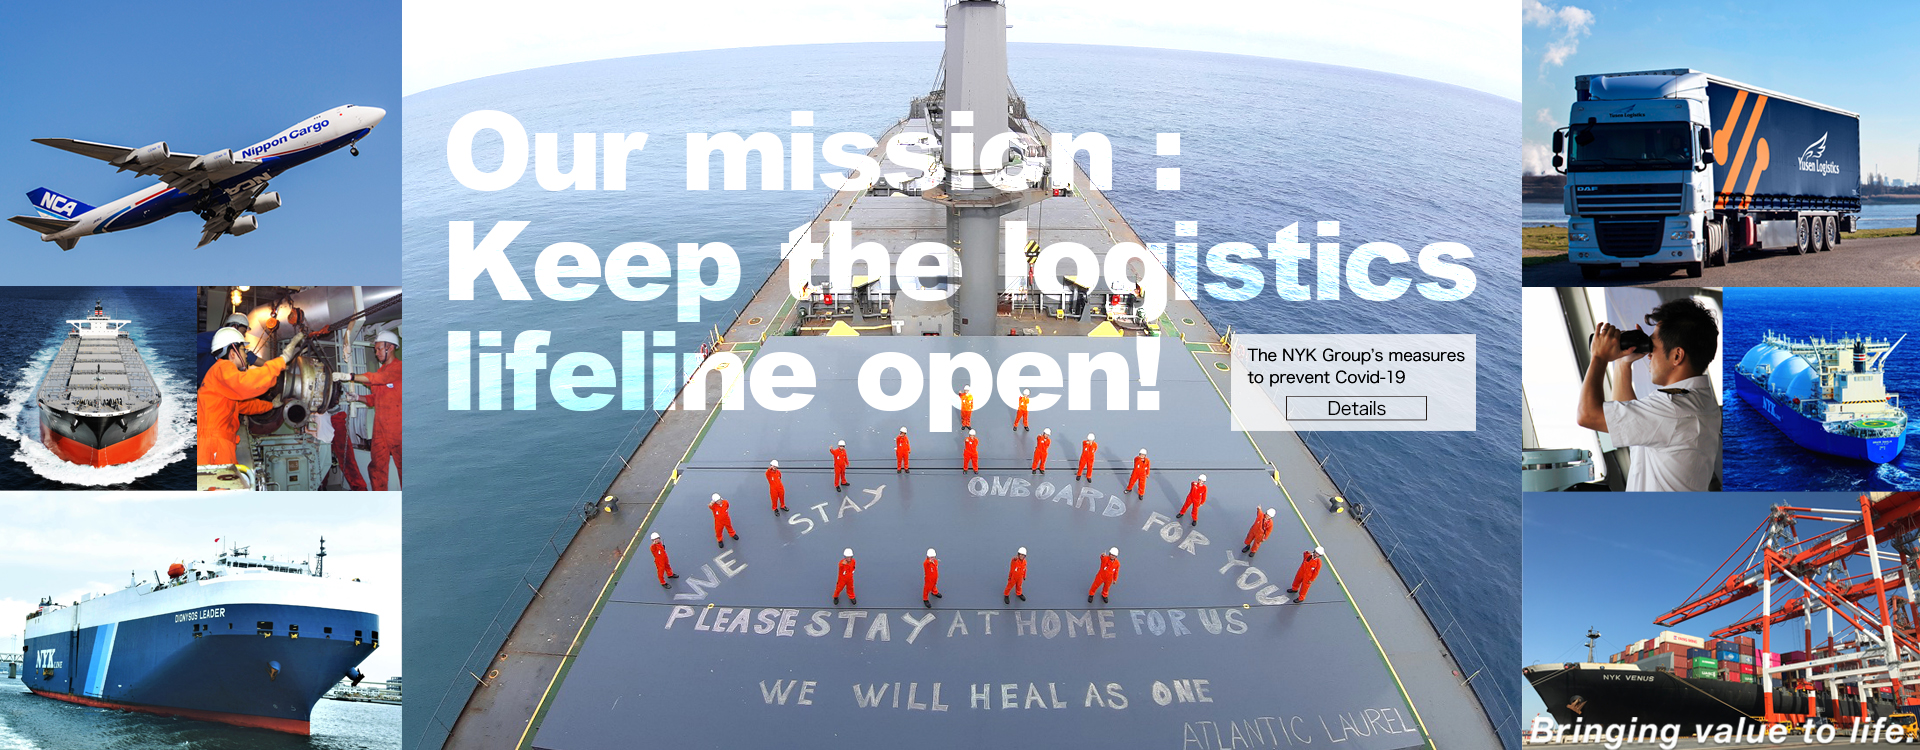 Our mission:Keep the logistics lifeline open!